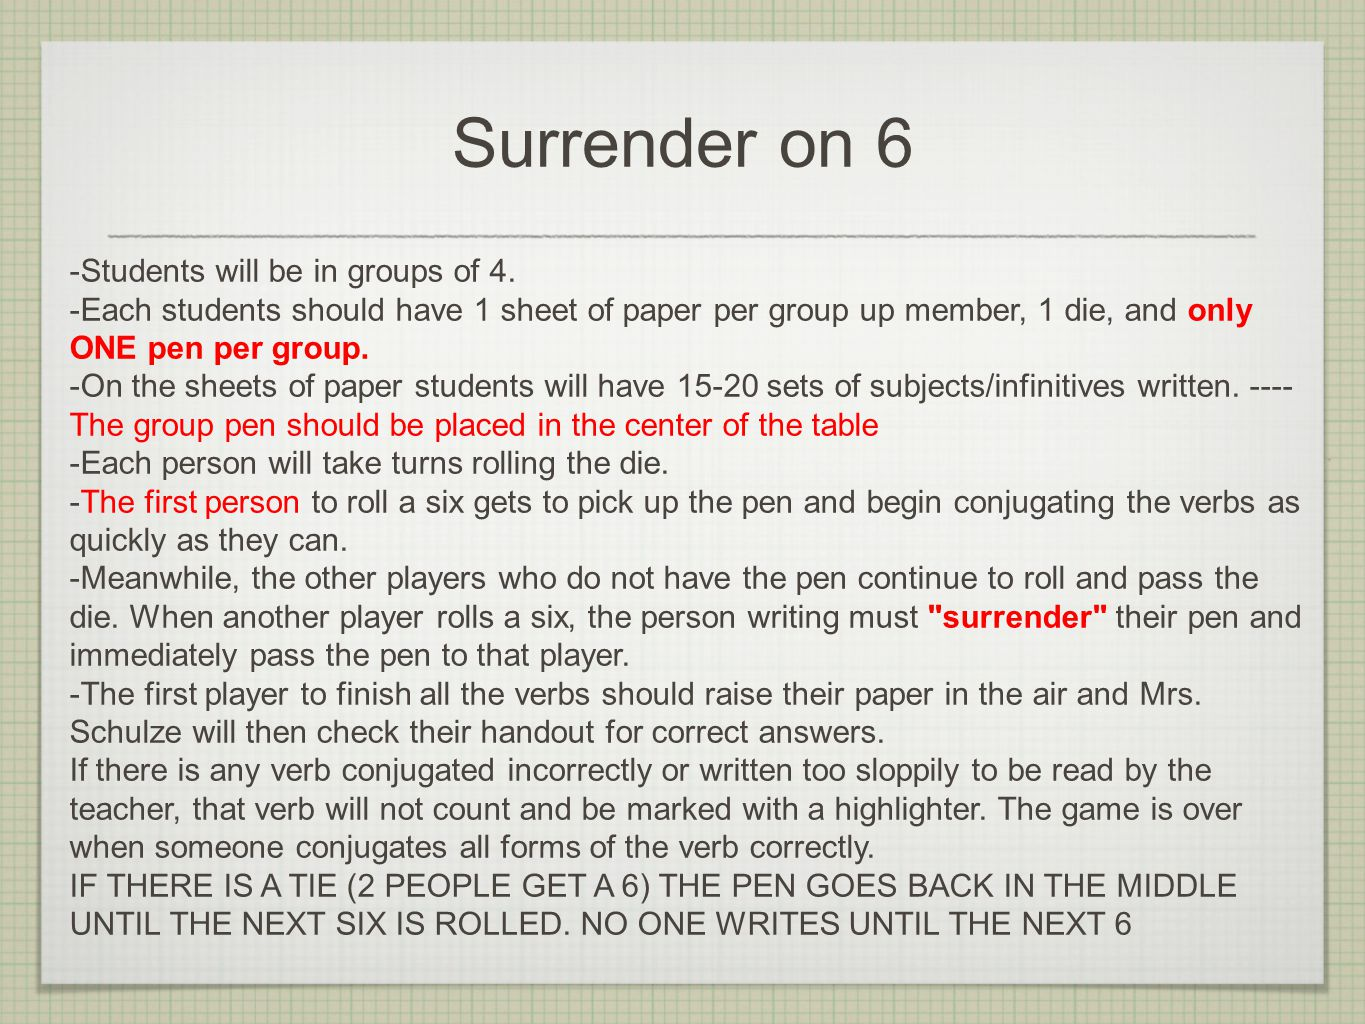 Surrender on 6 -Students will be in groups of 4.